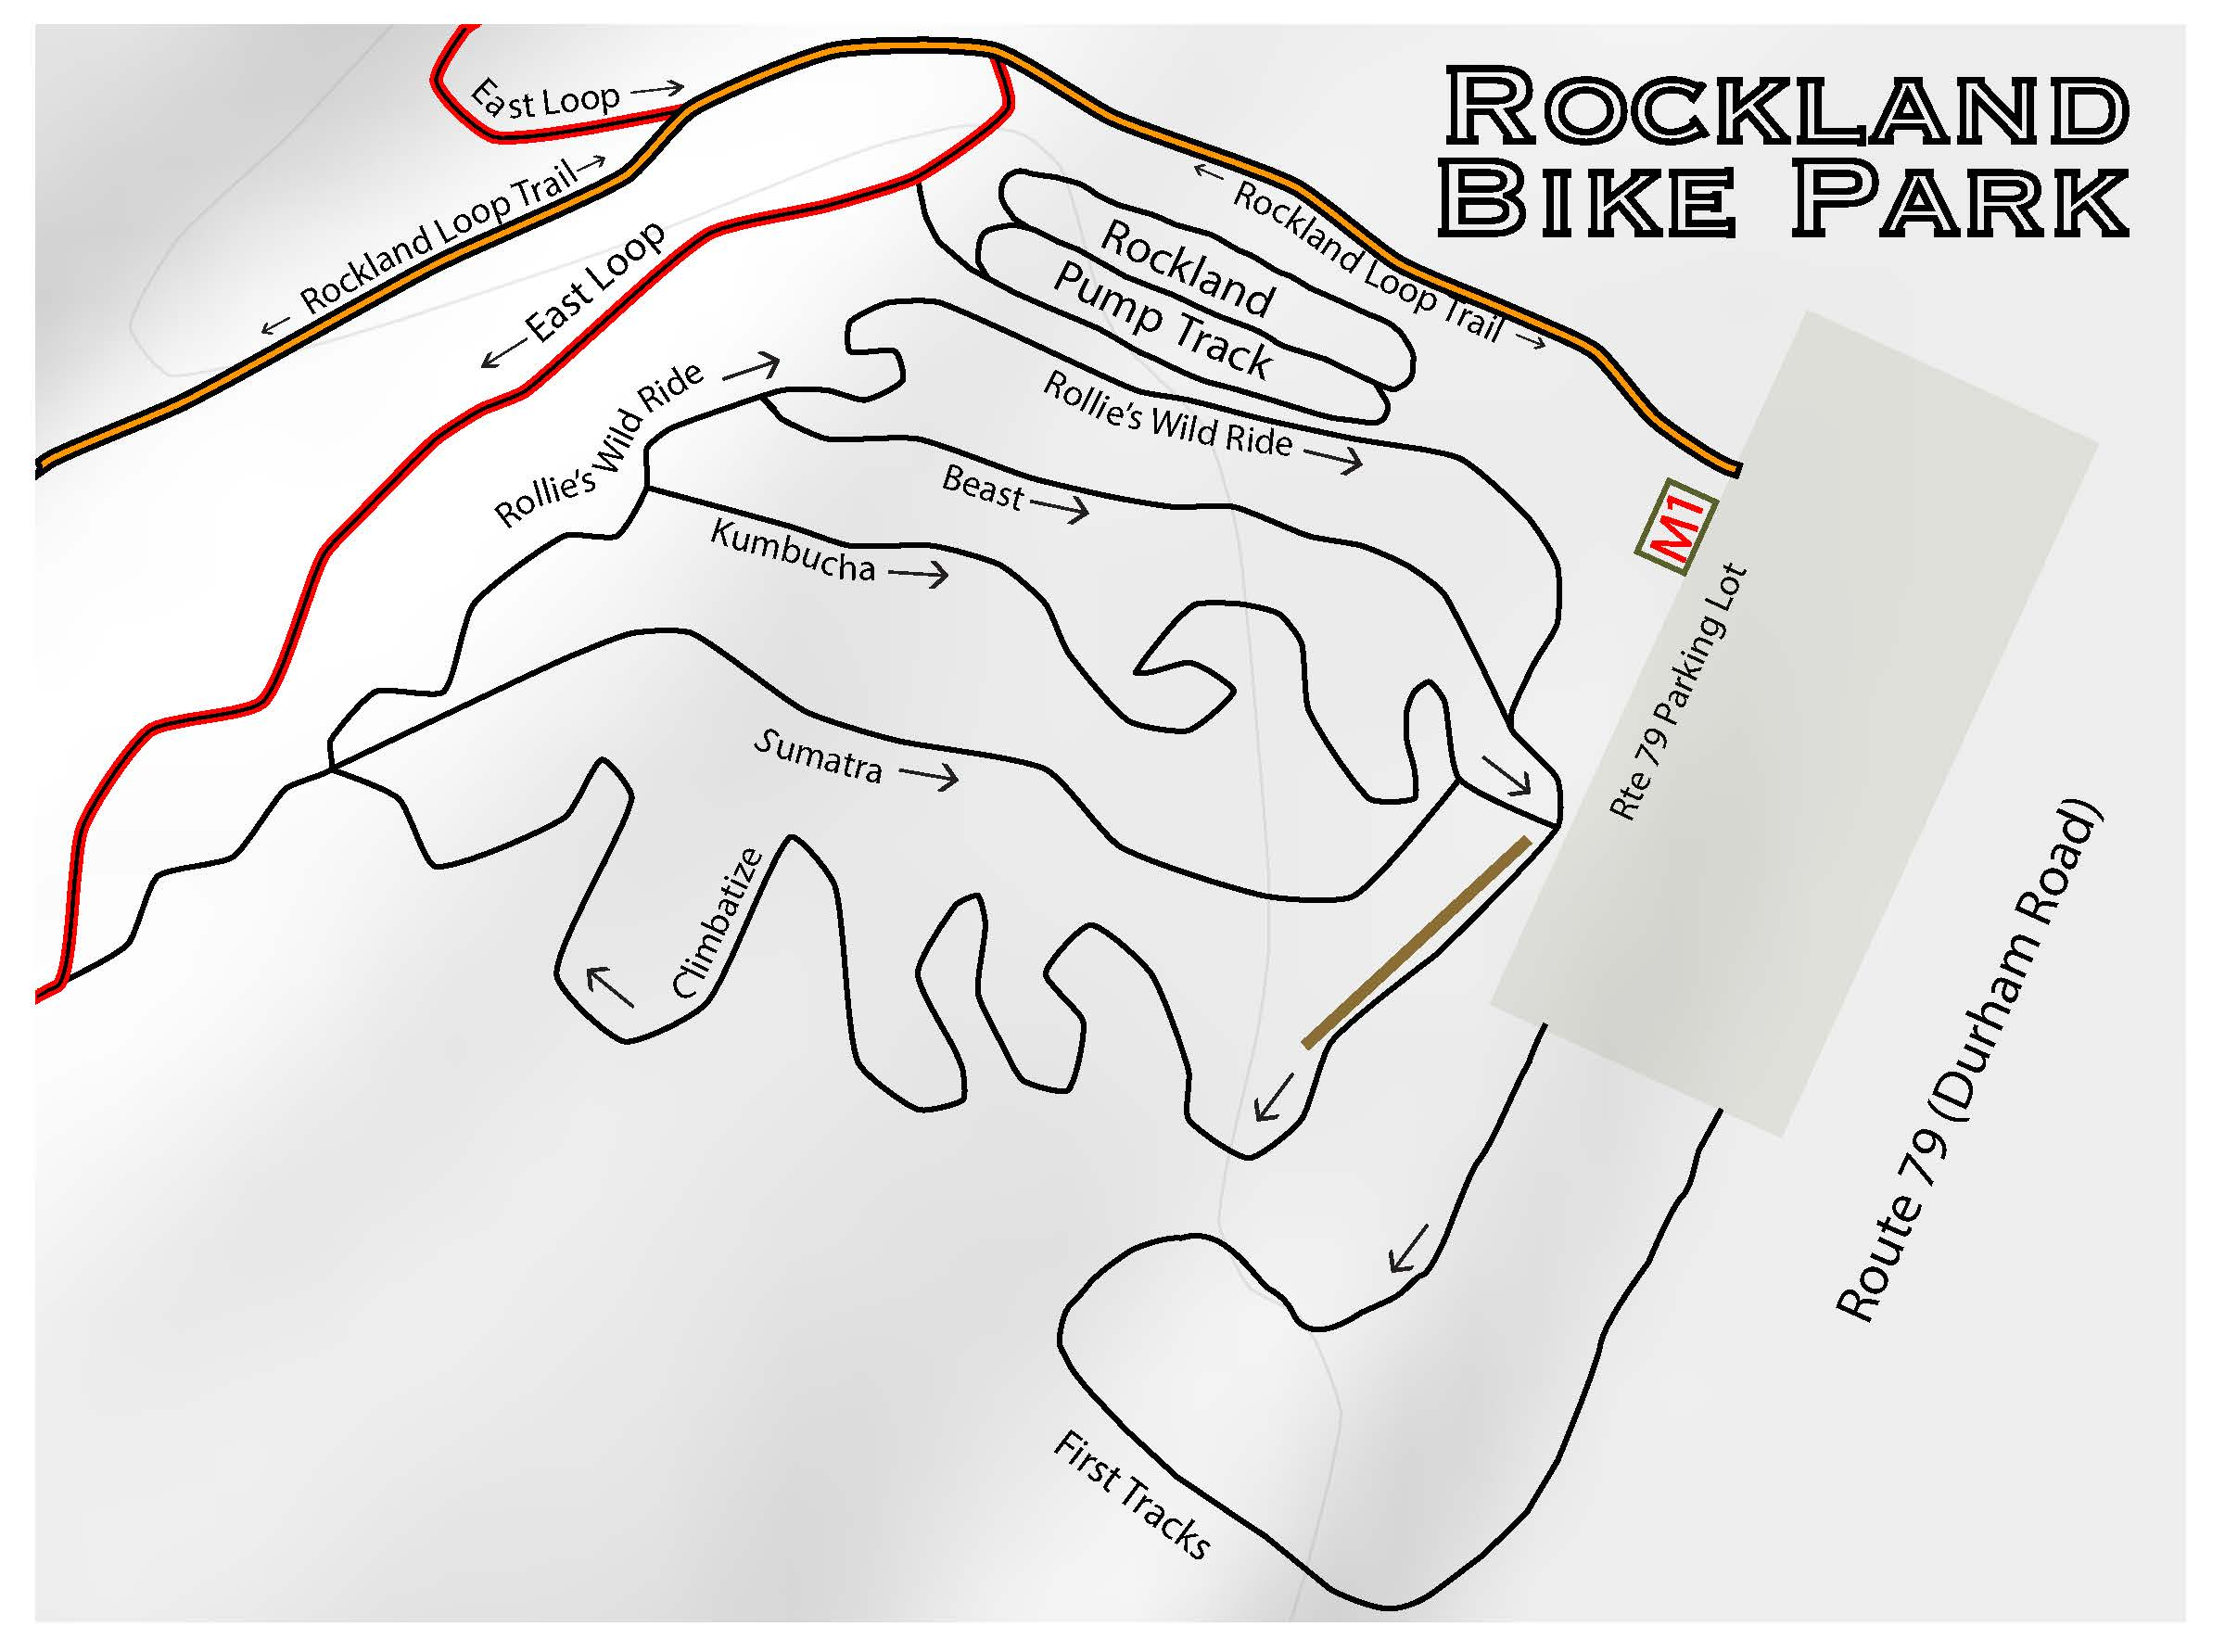 Rockland Bike Park Map 2019